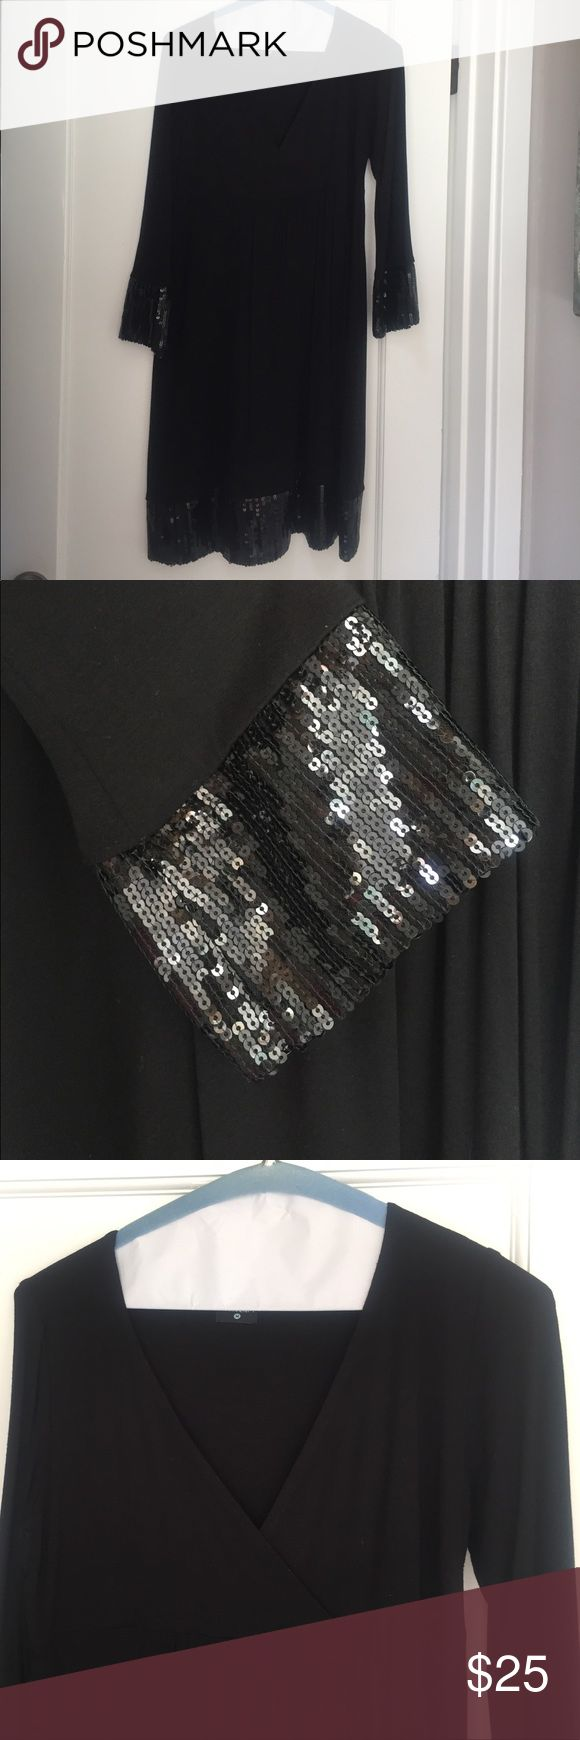 Olian Maternity black cocktail mini-dress Gorgeous, black Olian maternity dress in M. This is the most flattering, classic maternity dress! Empire waist, sequin details at the wrists and hem. In excellent used condition! Worn once. Olian Dresses Long Sleeve